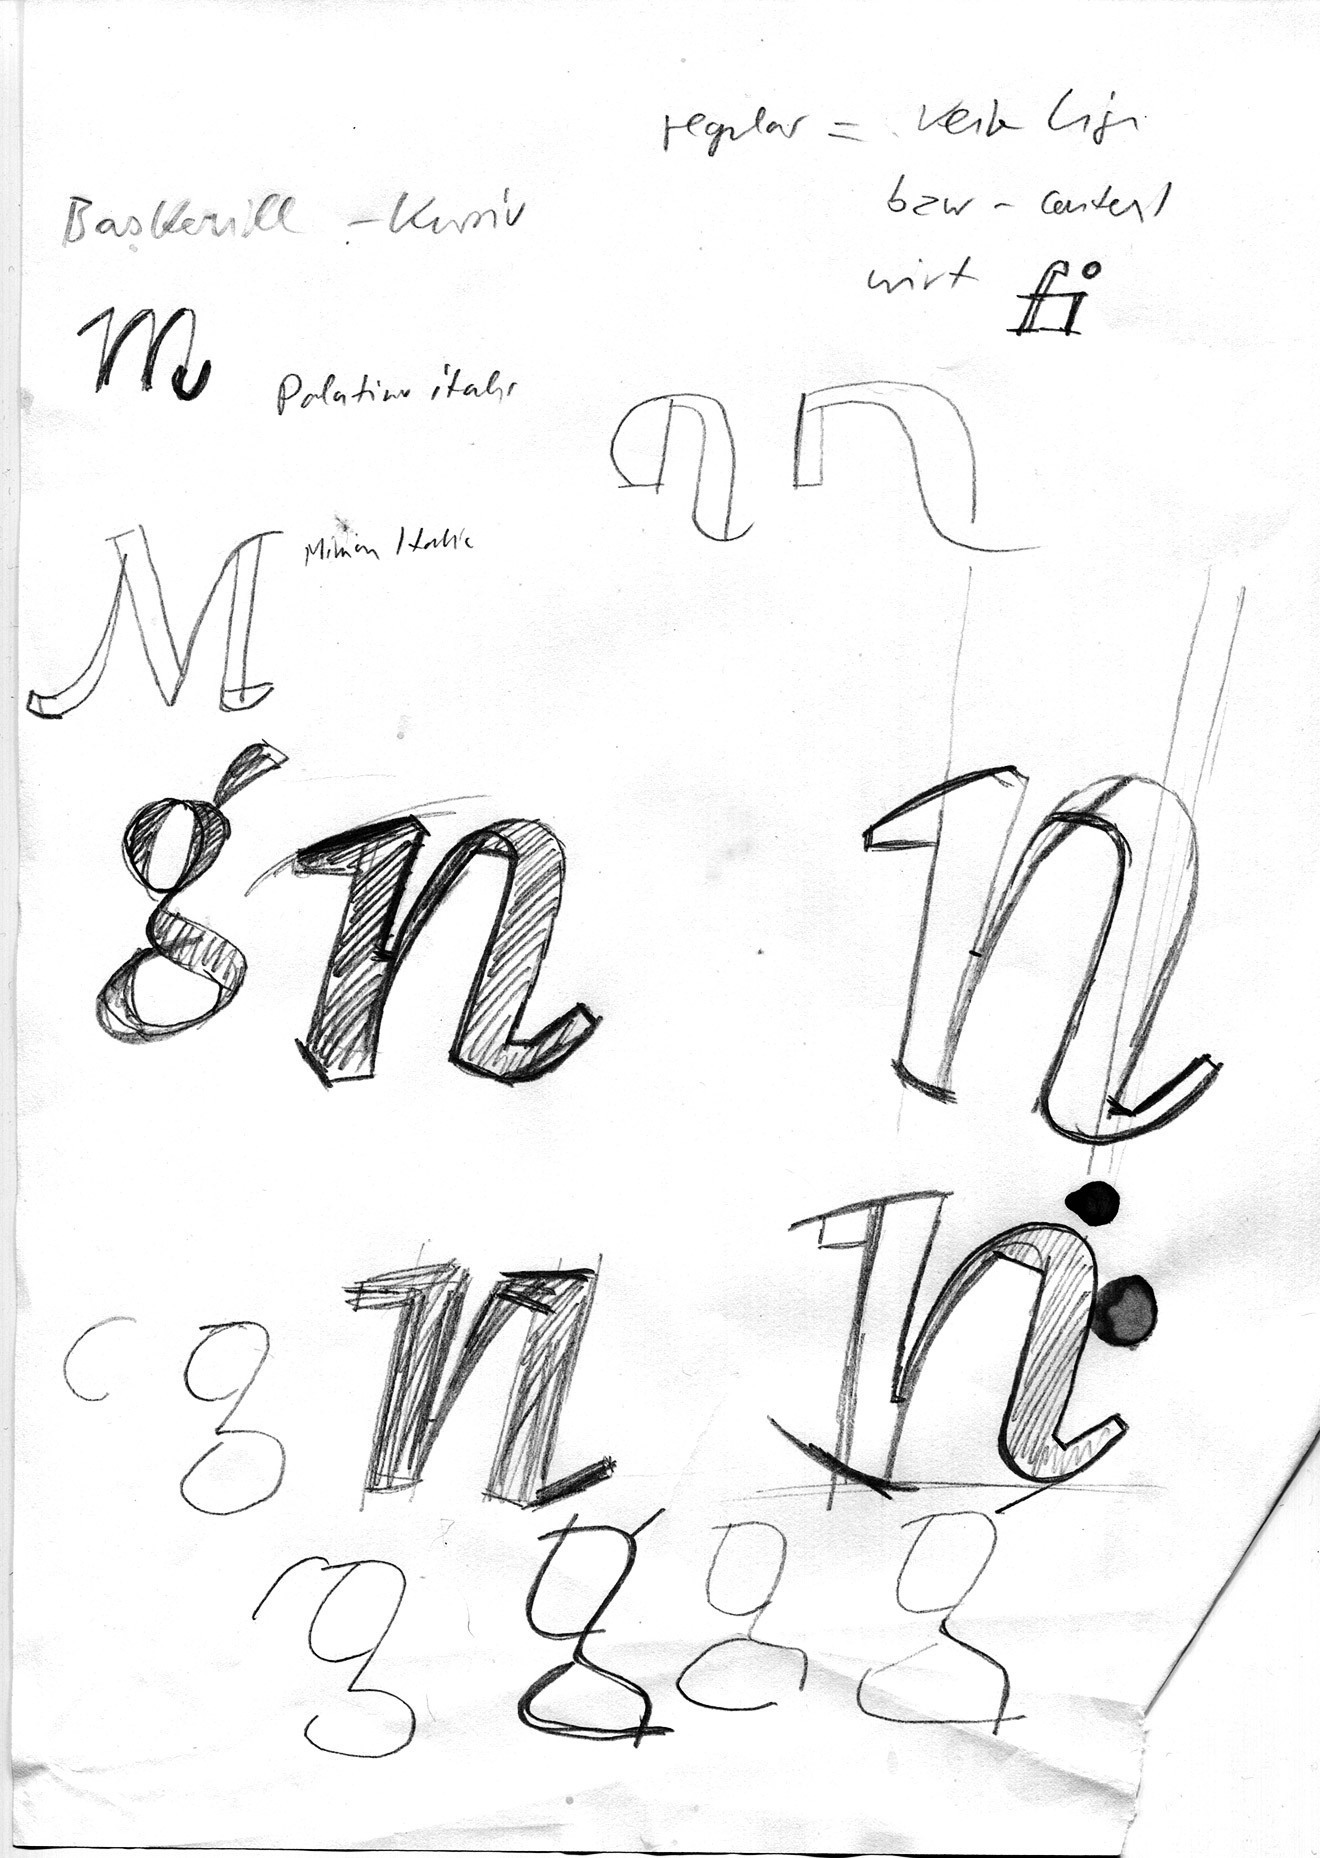 The first ideas for the Italic on paper. The primary purpose is not the beauty of the drawing, but visualising, recording and proving formal concepts.